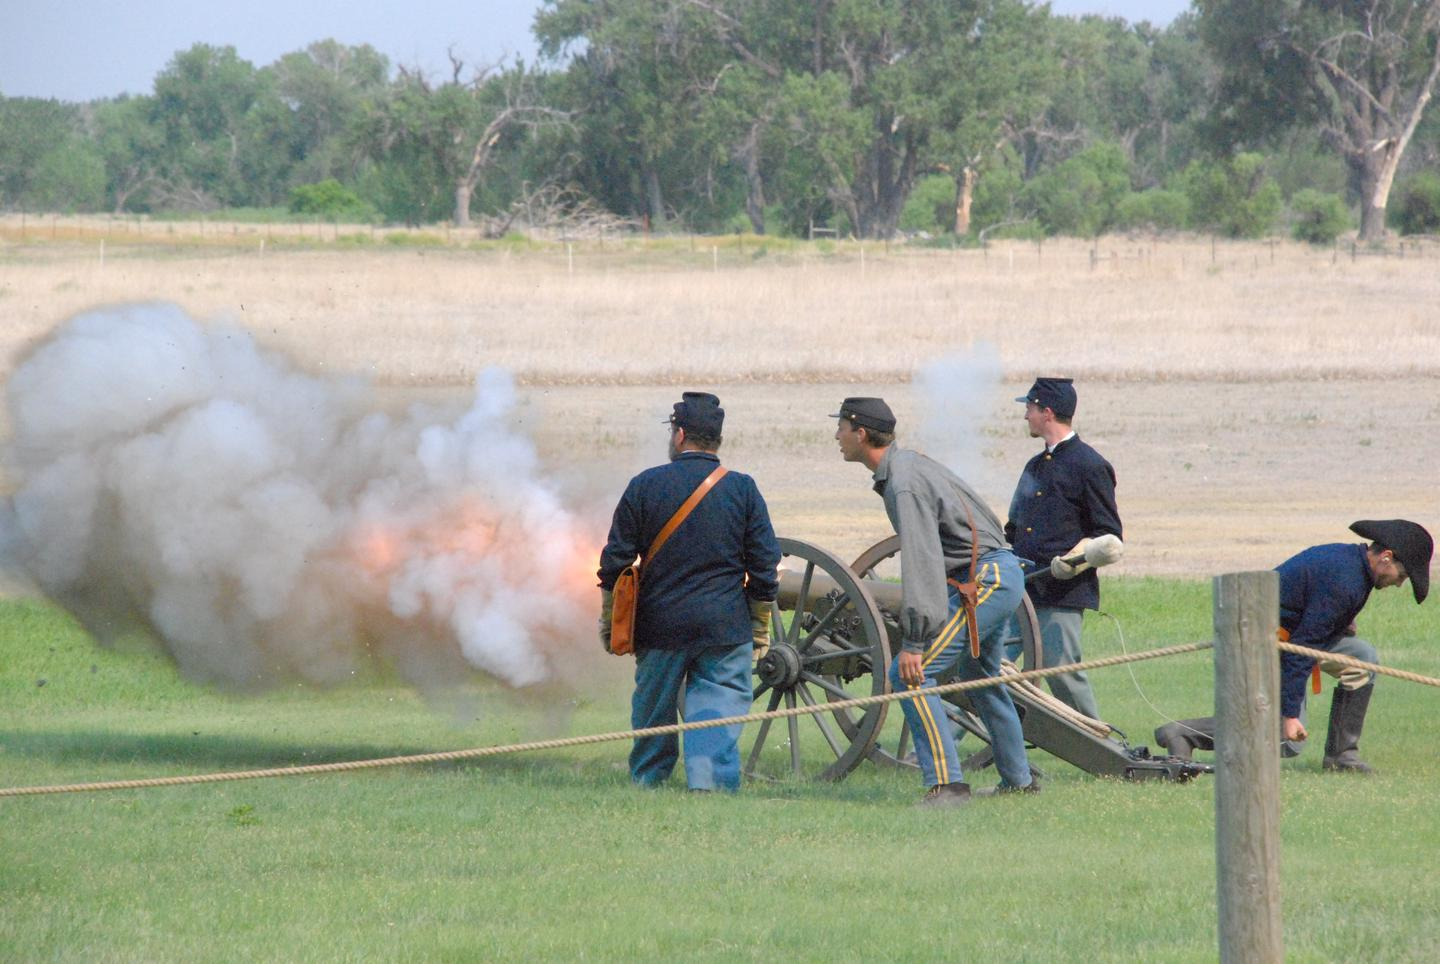 Artillery DemonstrationThe black powder demonstrations remain one of the most popular interpretive programs offered at the site.